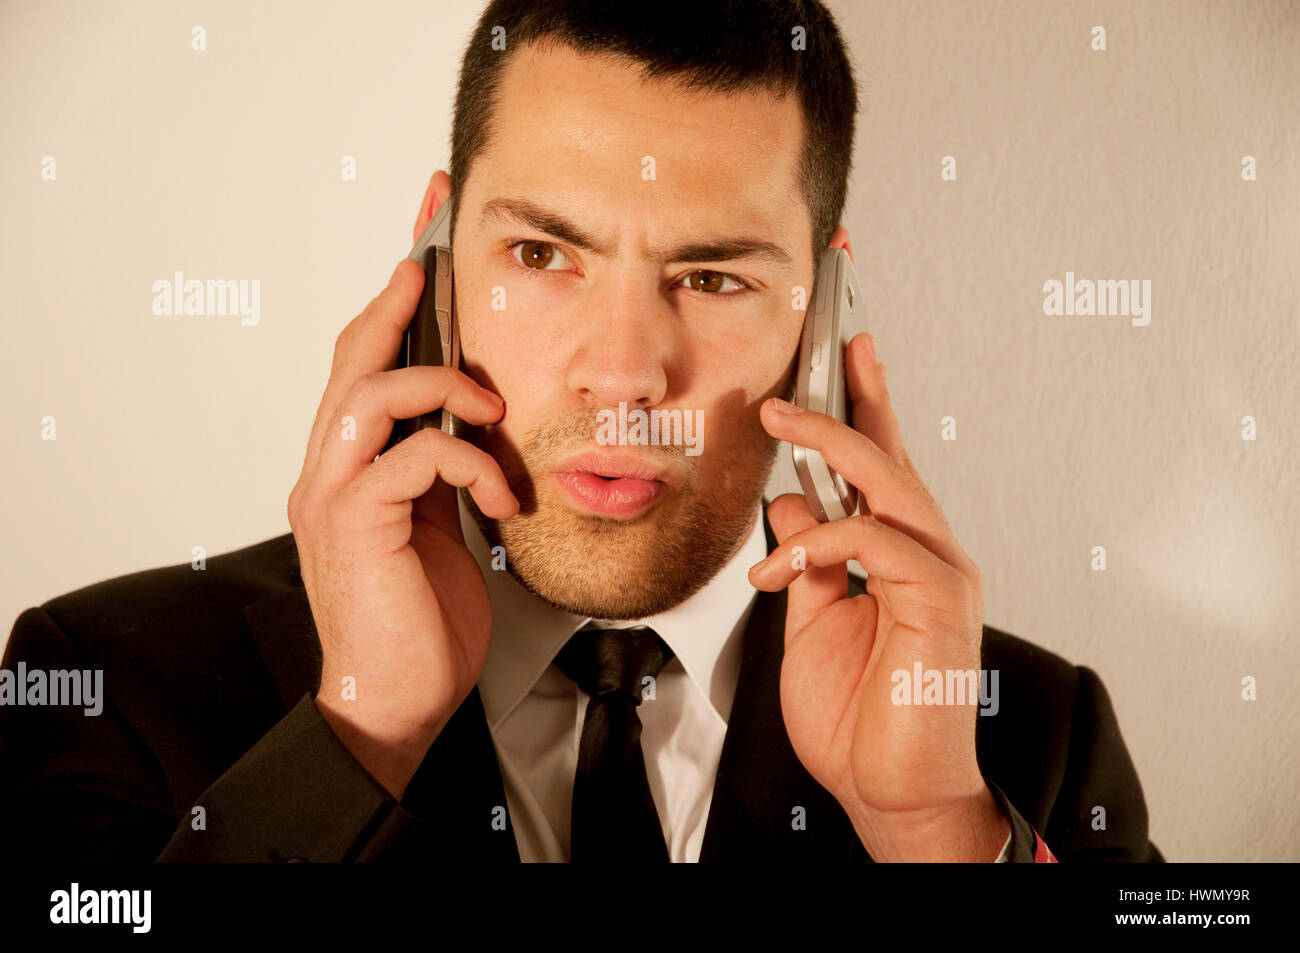 Business man using two mobile phones. - Stock Image